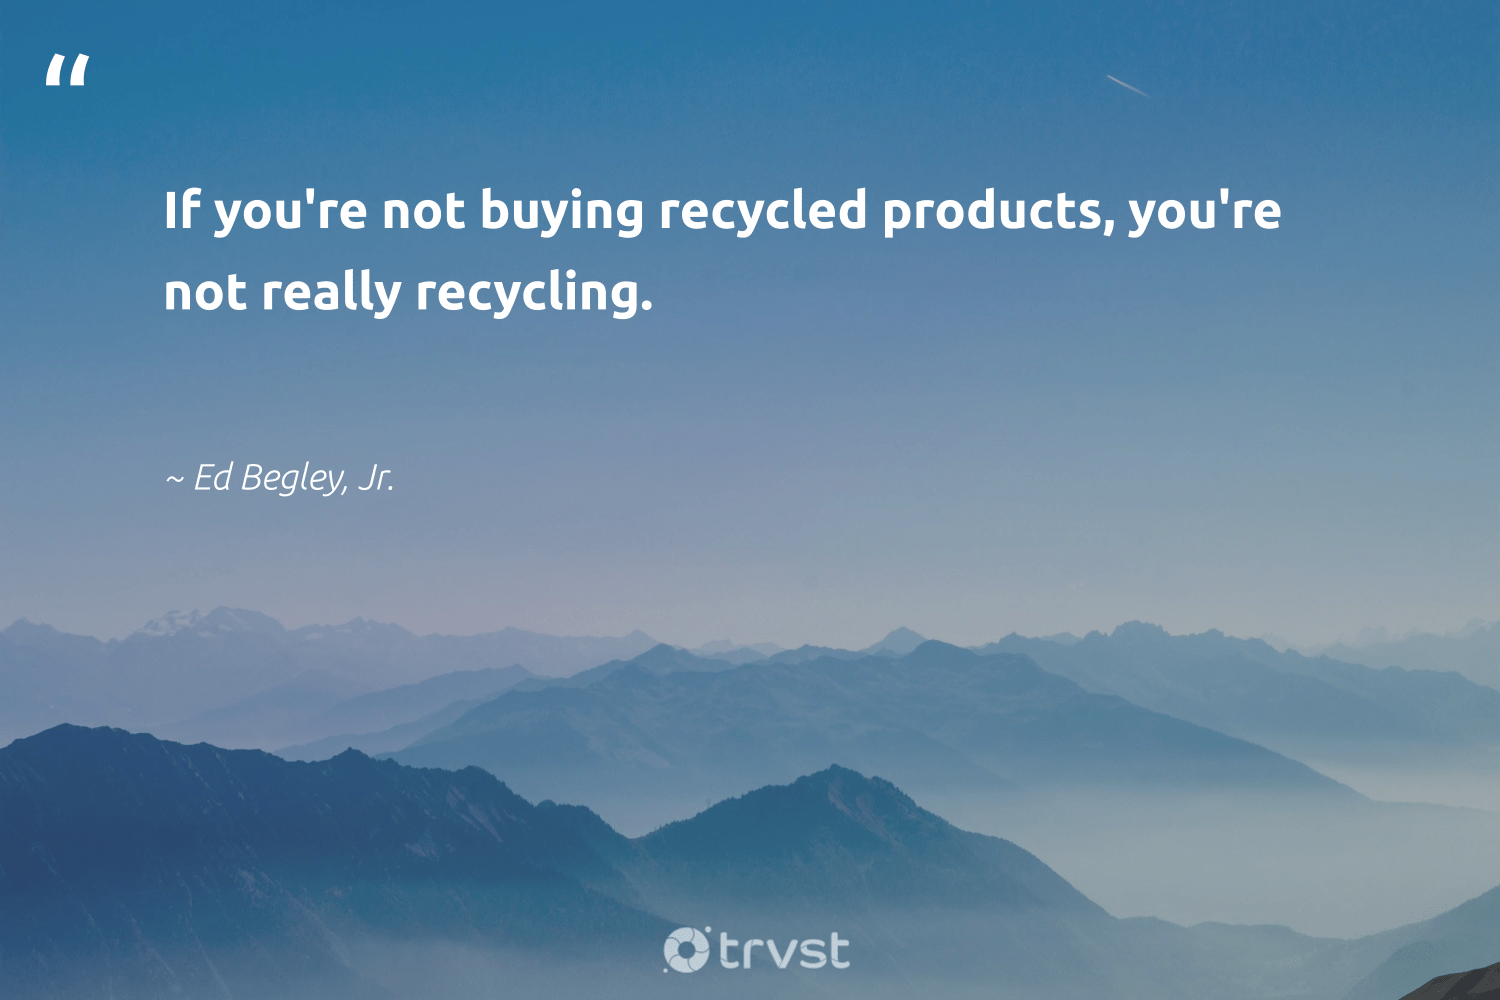 """""""If you're not buying recycled products, you're not really recycling.""""  - Ed Begley, Jr. #trvst #quotes #recycling #recycled #reducereuserecycle #refurbished #waste #betterfortheplanet #dosomething #upcycling #refuse #biodegradable"""